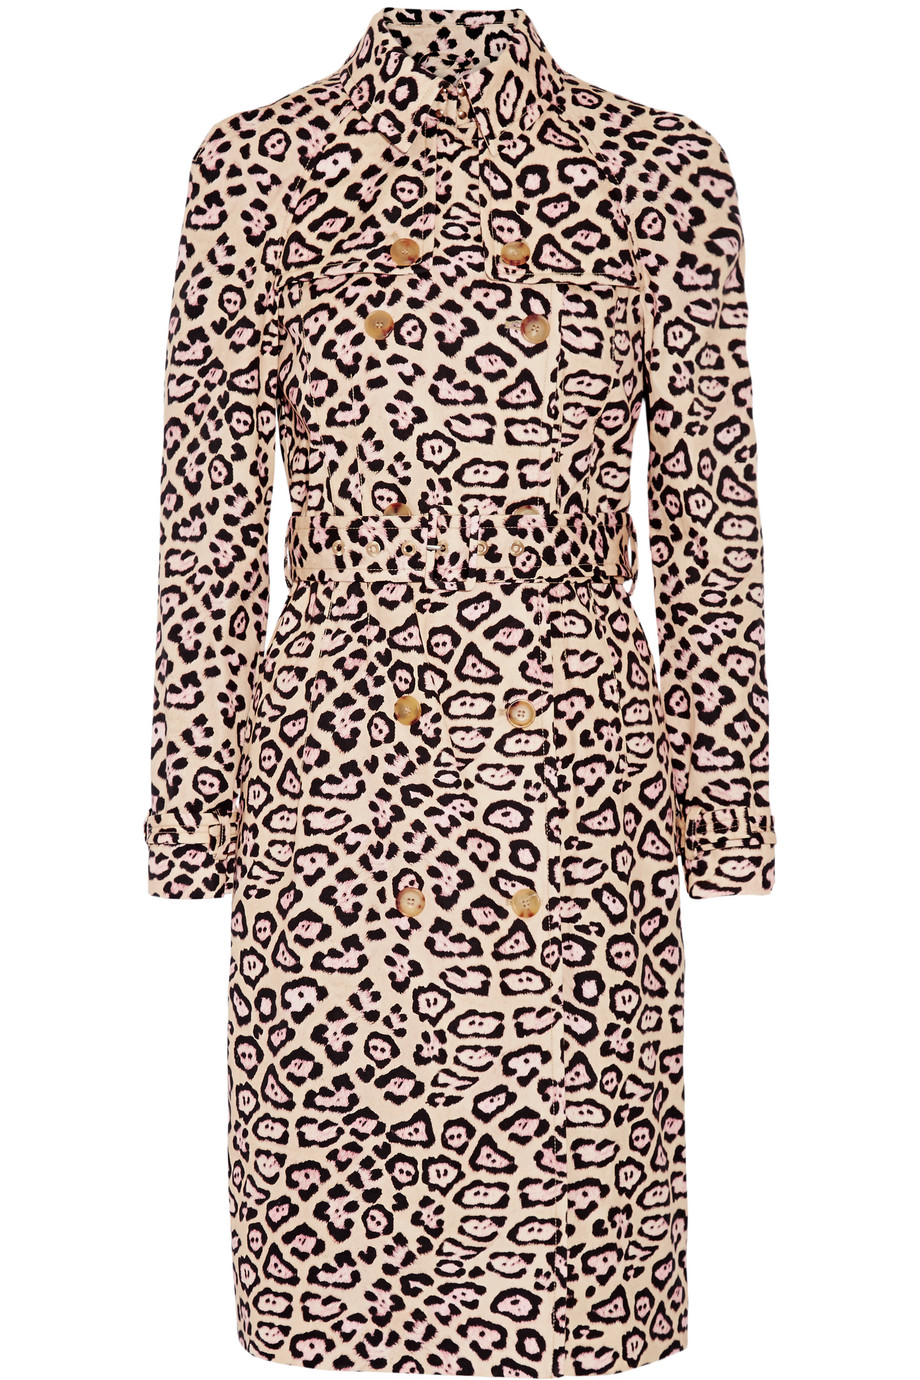 Givenchy Trench Coat in Leopard-Print Cotton, Leopard Print/Blush, Women's, Size: 34